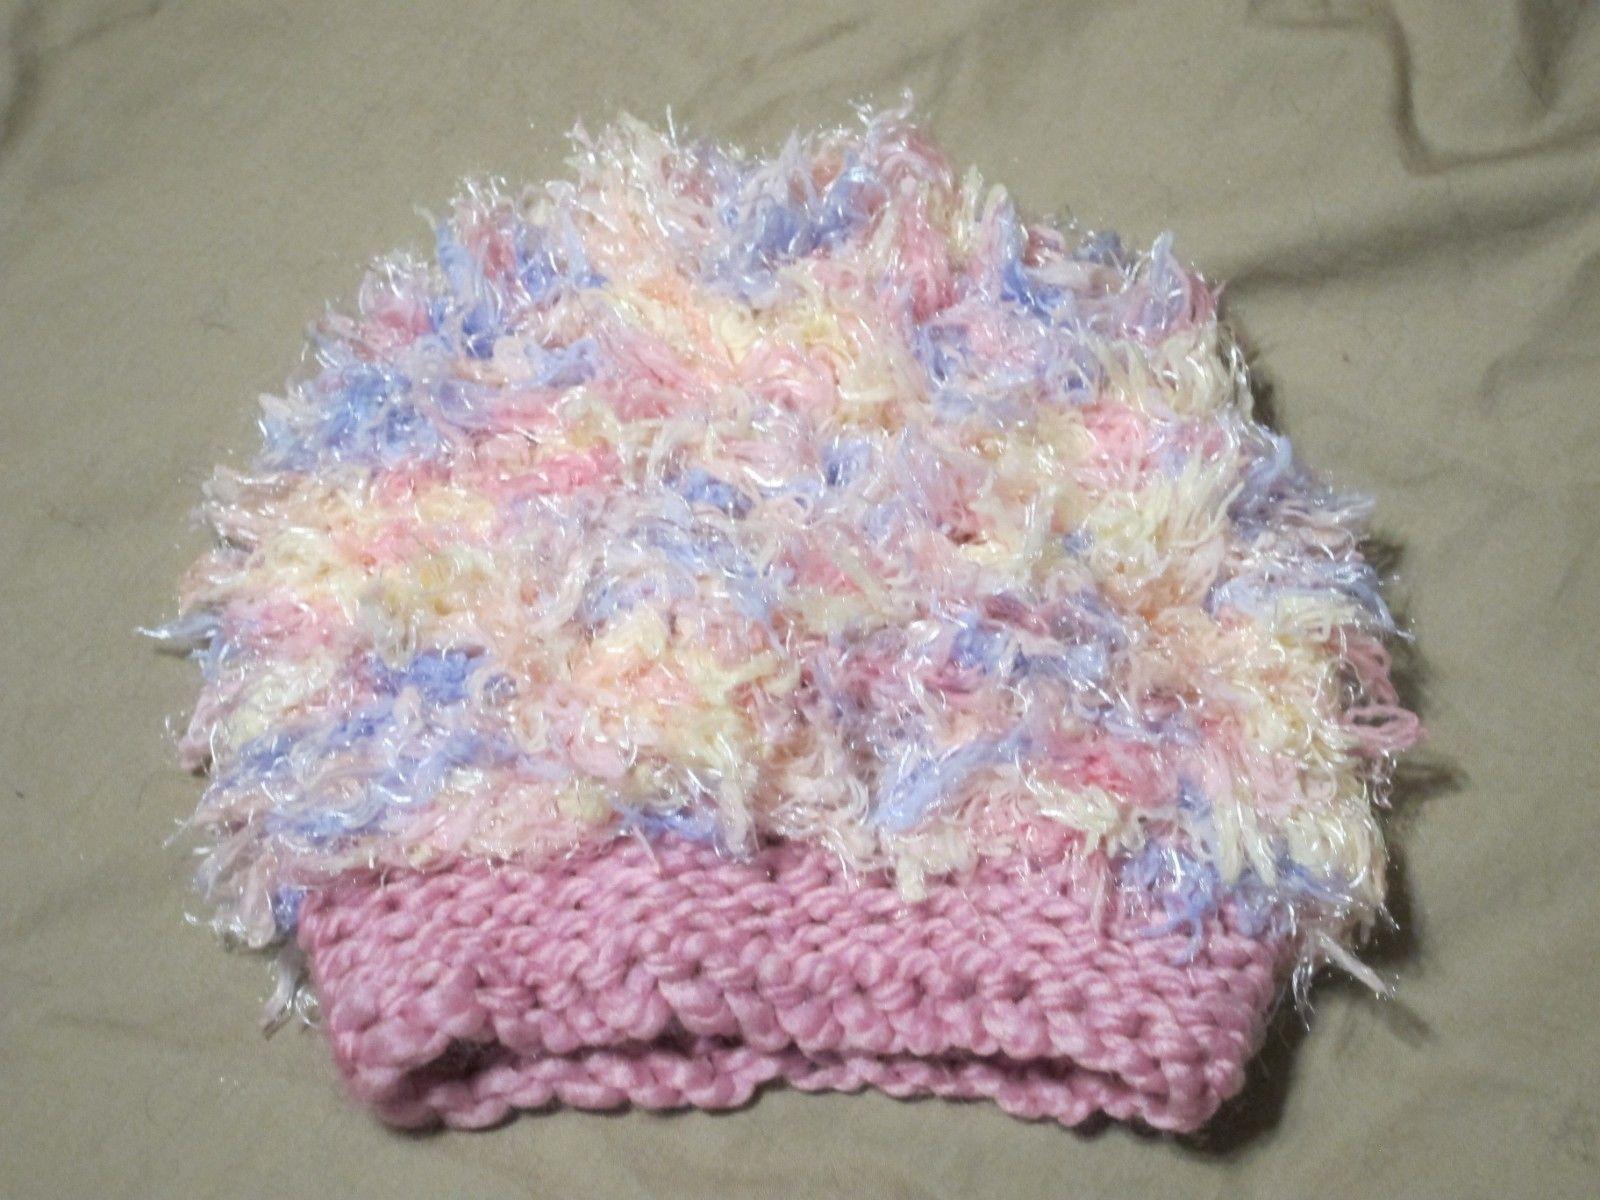 Handmade Knitted Pink Fuzzy Infant Winter Hat Cap CUTE